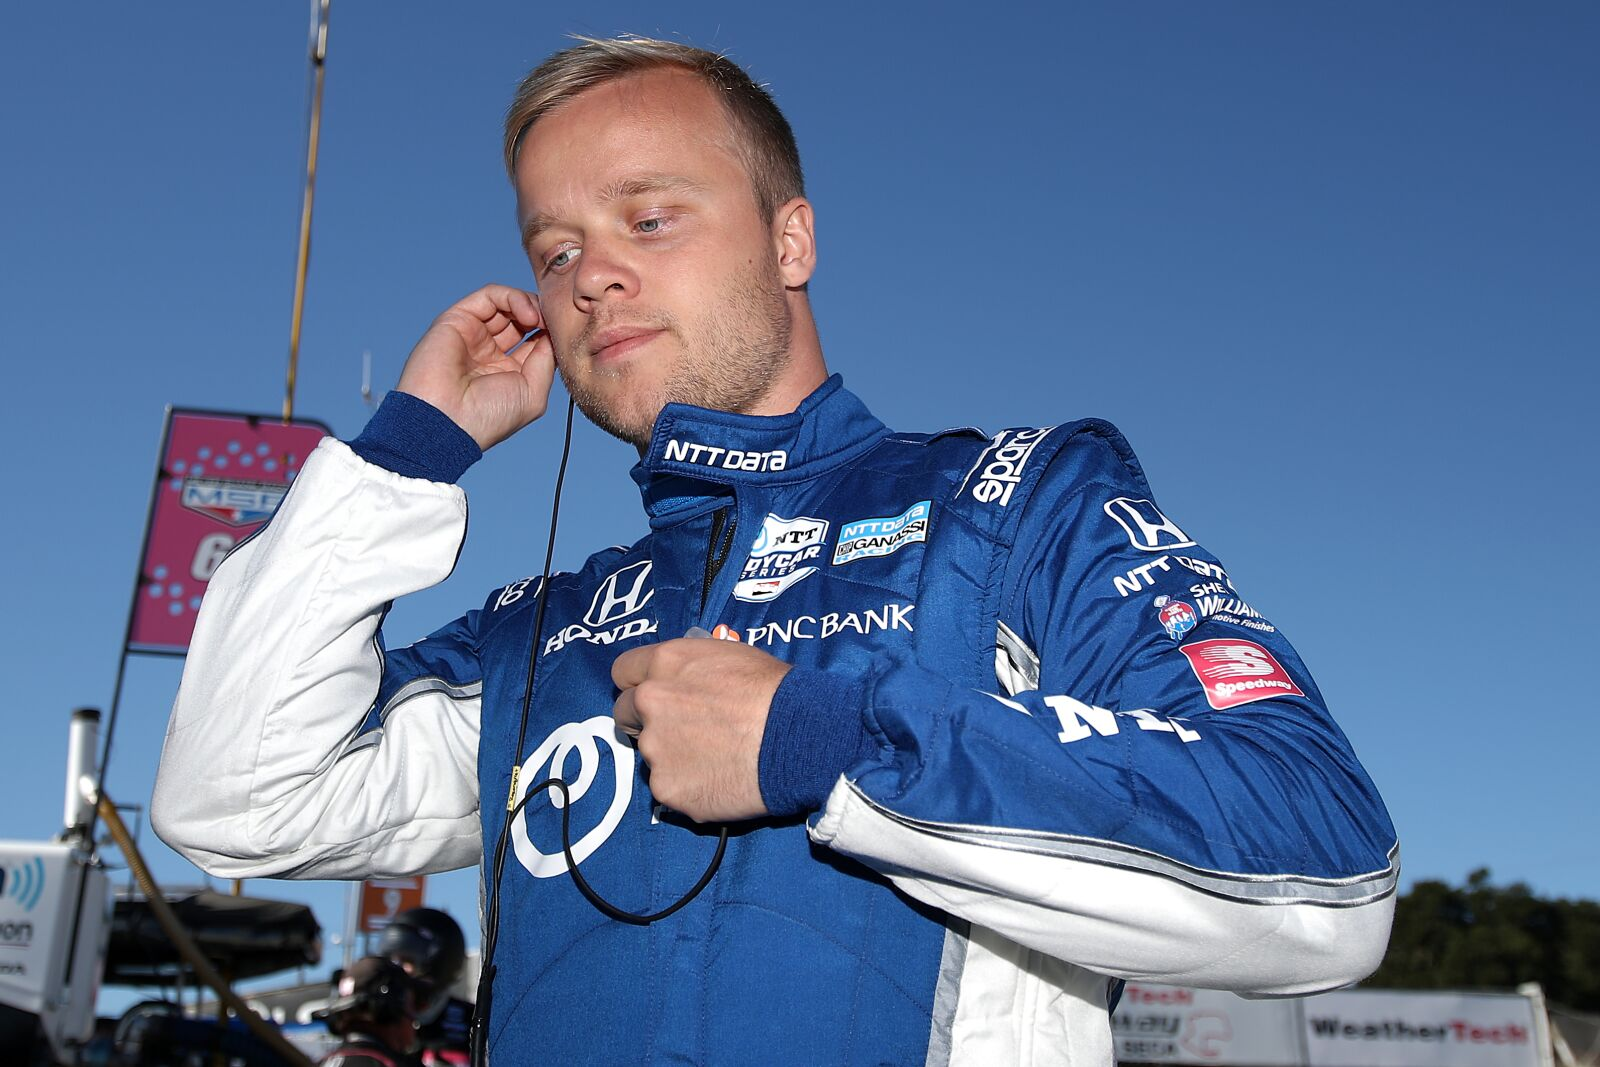 IndyCar: Felix Rosenqvist confirmed at Chip Ganassi Racing for 2020